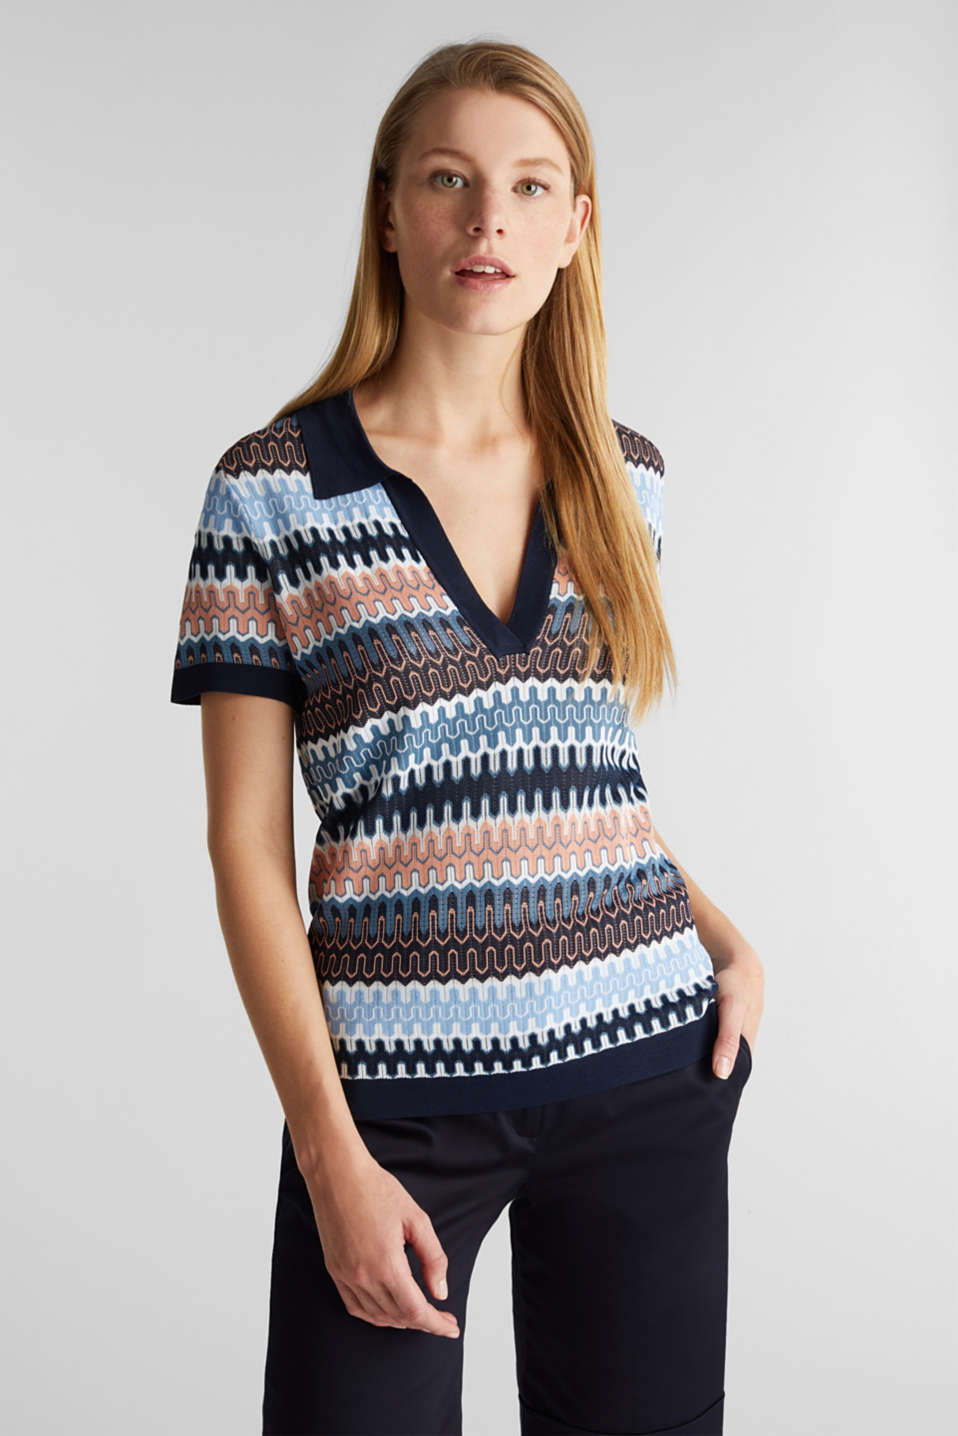 Short-sleeved jumper with a jacquard pattern, NAVY, detail image number 5